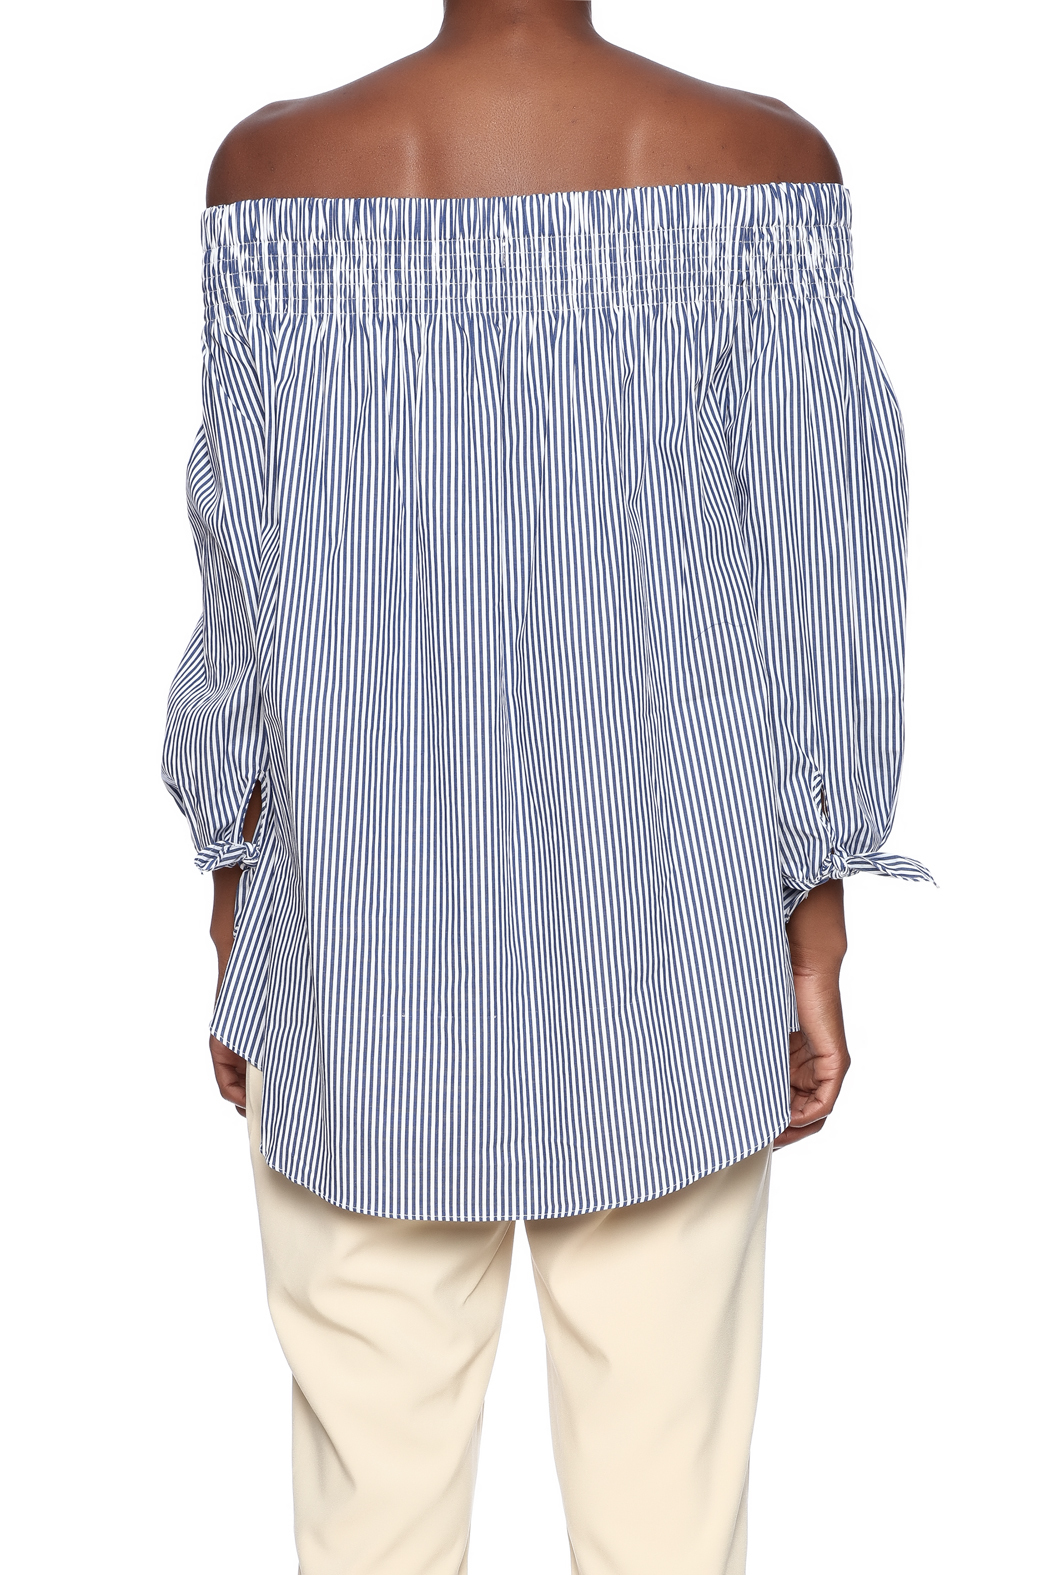 baf205b7ff8a Do   Be Striped Off Shoulder Top from New Orleans by Marigny House ...